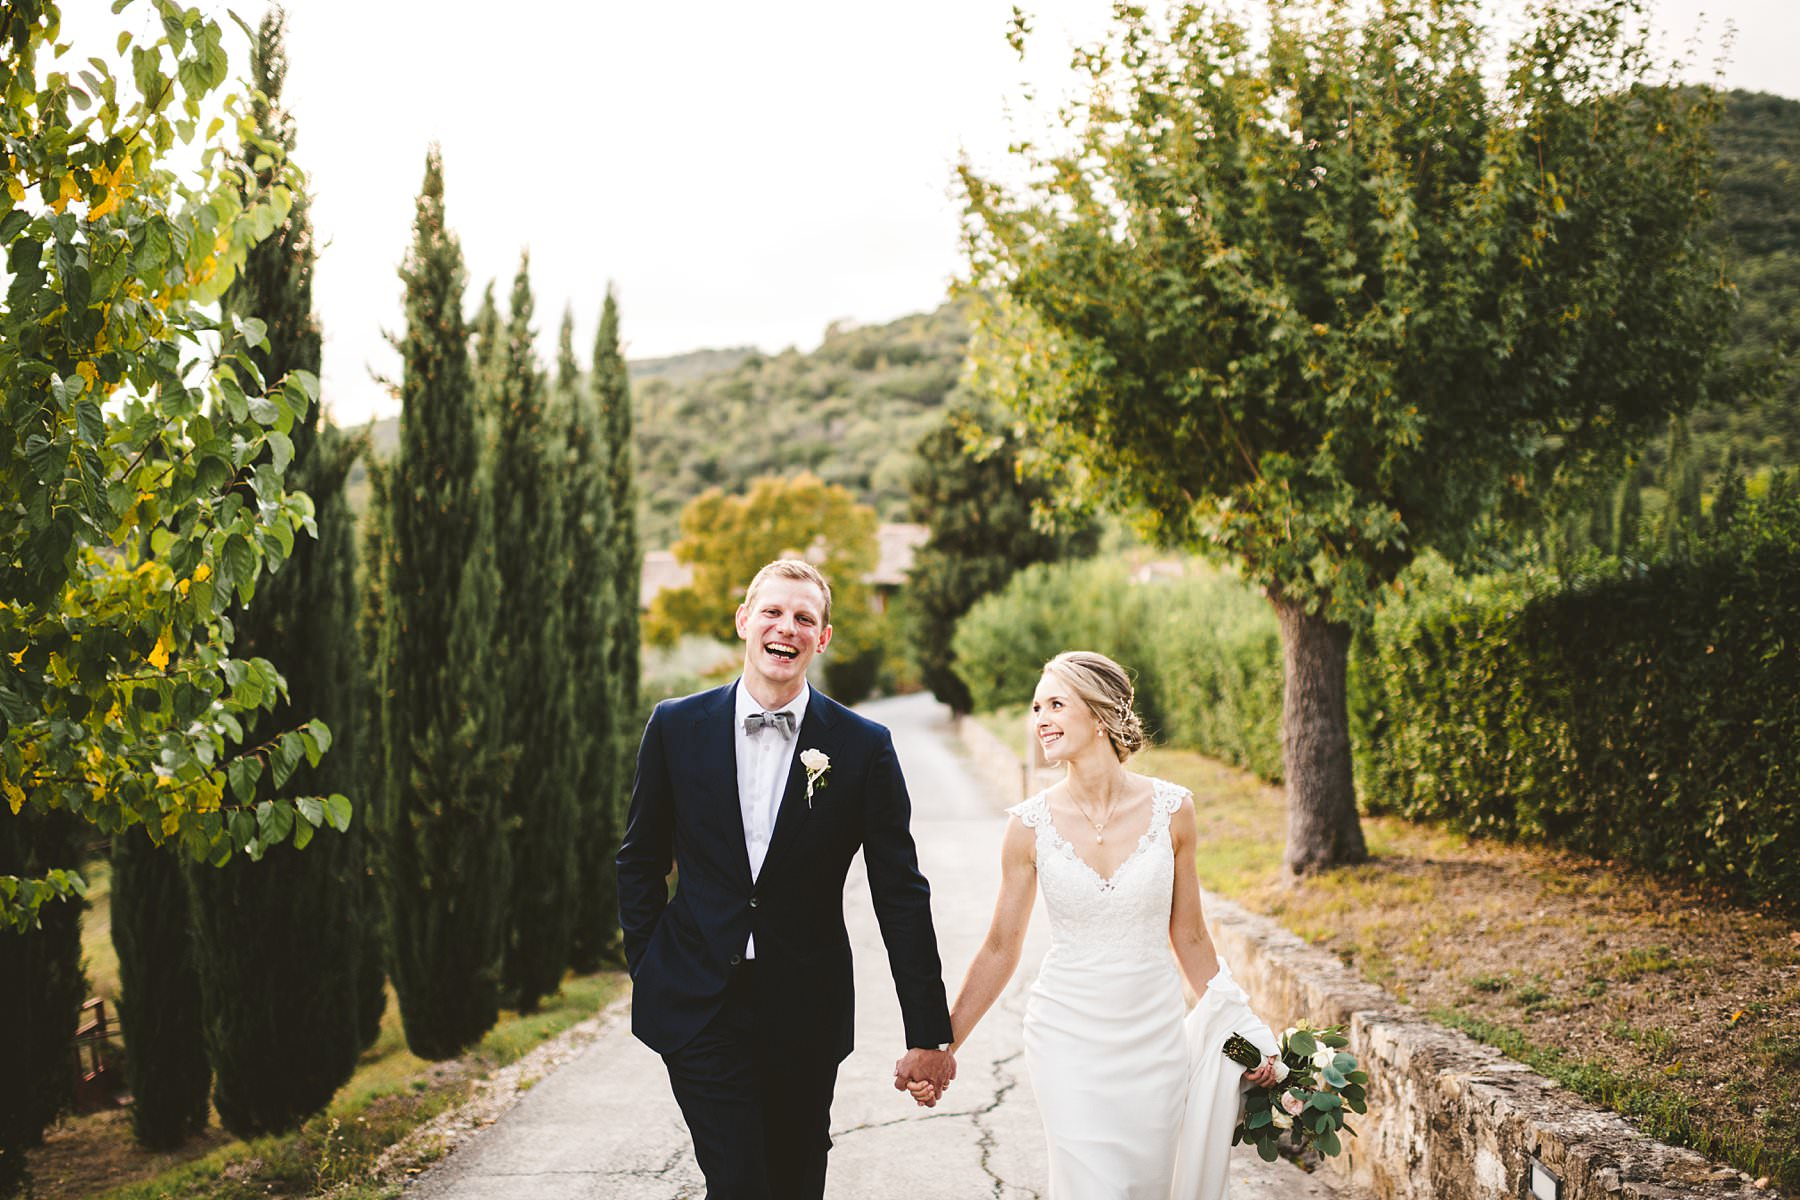 A special international wedding in the countryside of Umbria, Italy. Elegant Australian wedding smiling couple portrait around the property of Villa Monte Solare, a historic residence tucked in the countryside among rolling hills. The settings were countryside landscapes with cypress lines, olive groves and a stunning wall covered in red ivy leaves